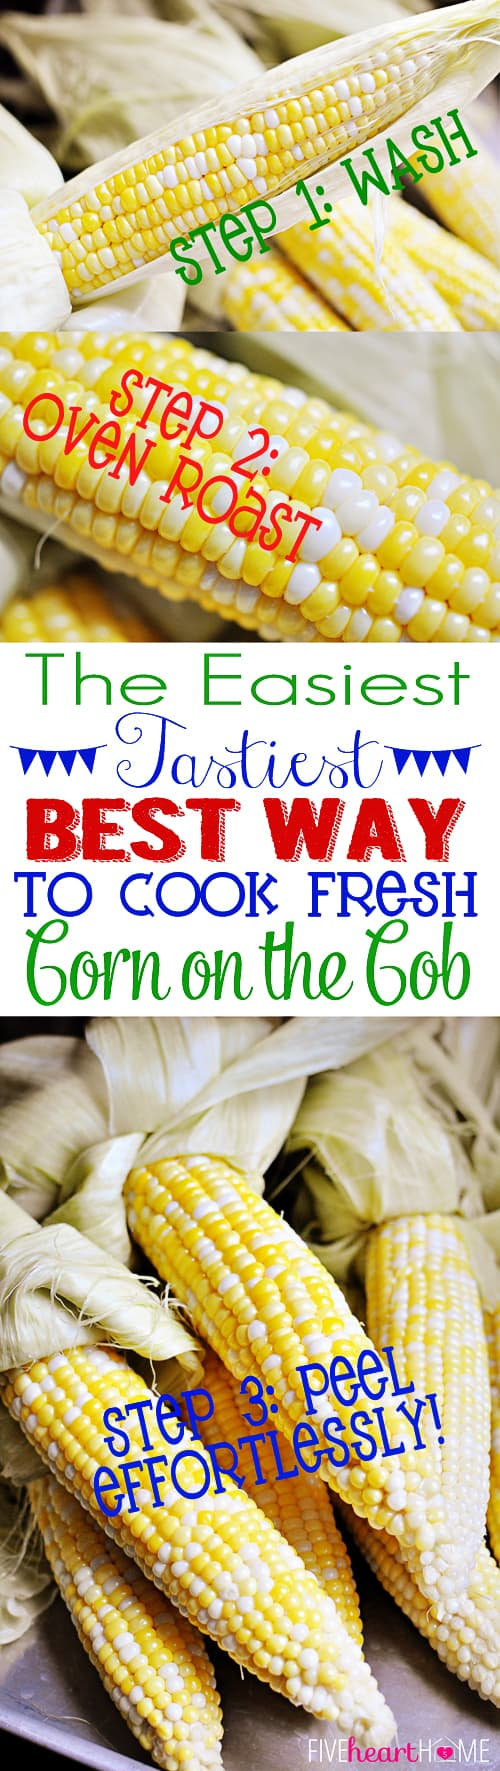 The Easiest, Tastiest, BEST Way to Cook Fresh Corn on the Cob Collage with Text Overlay 123